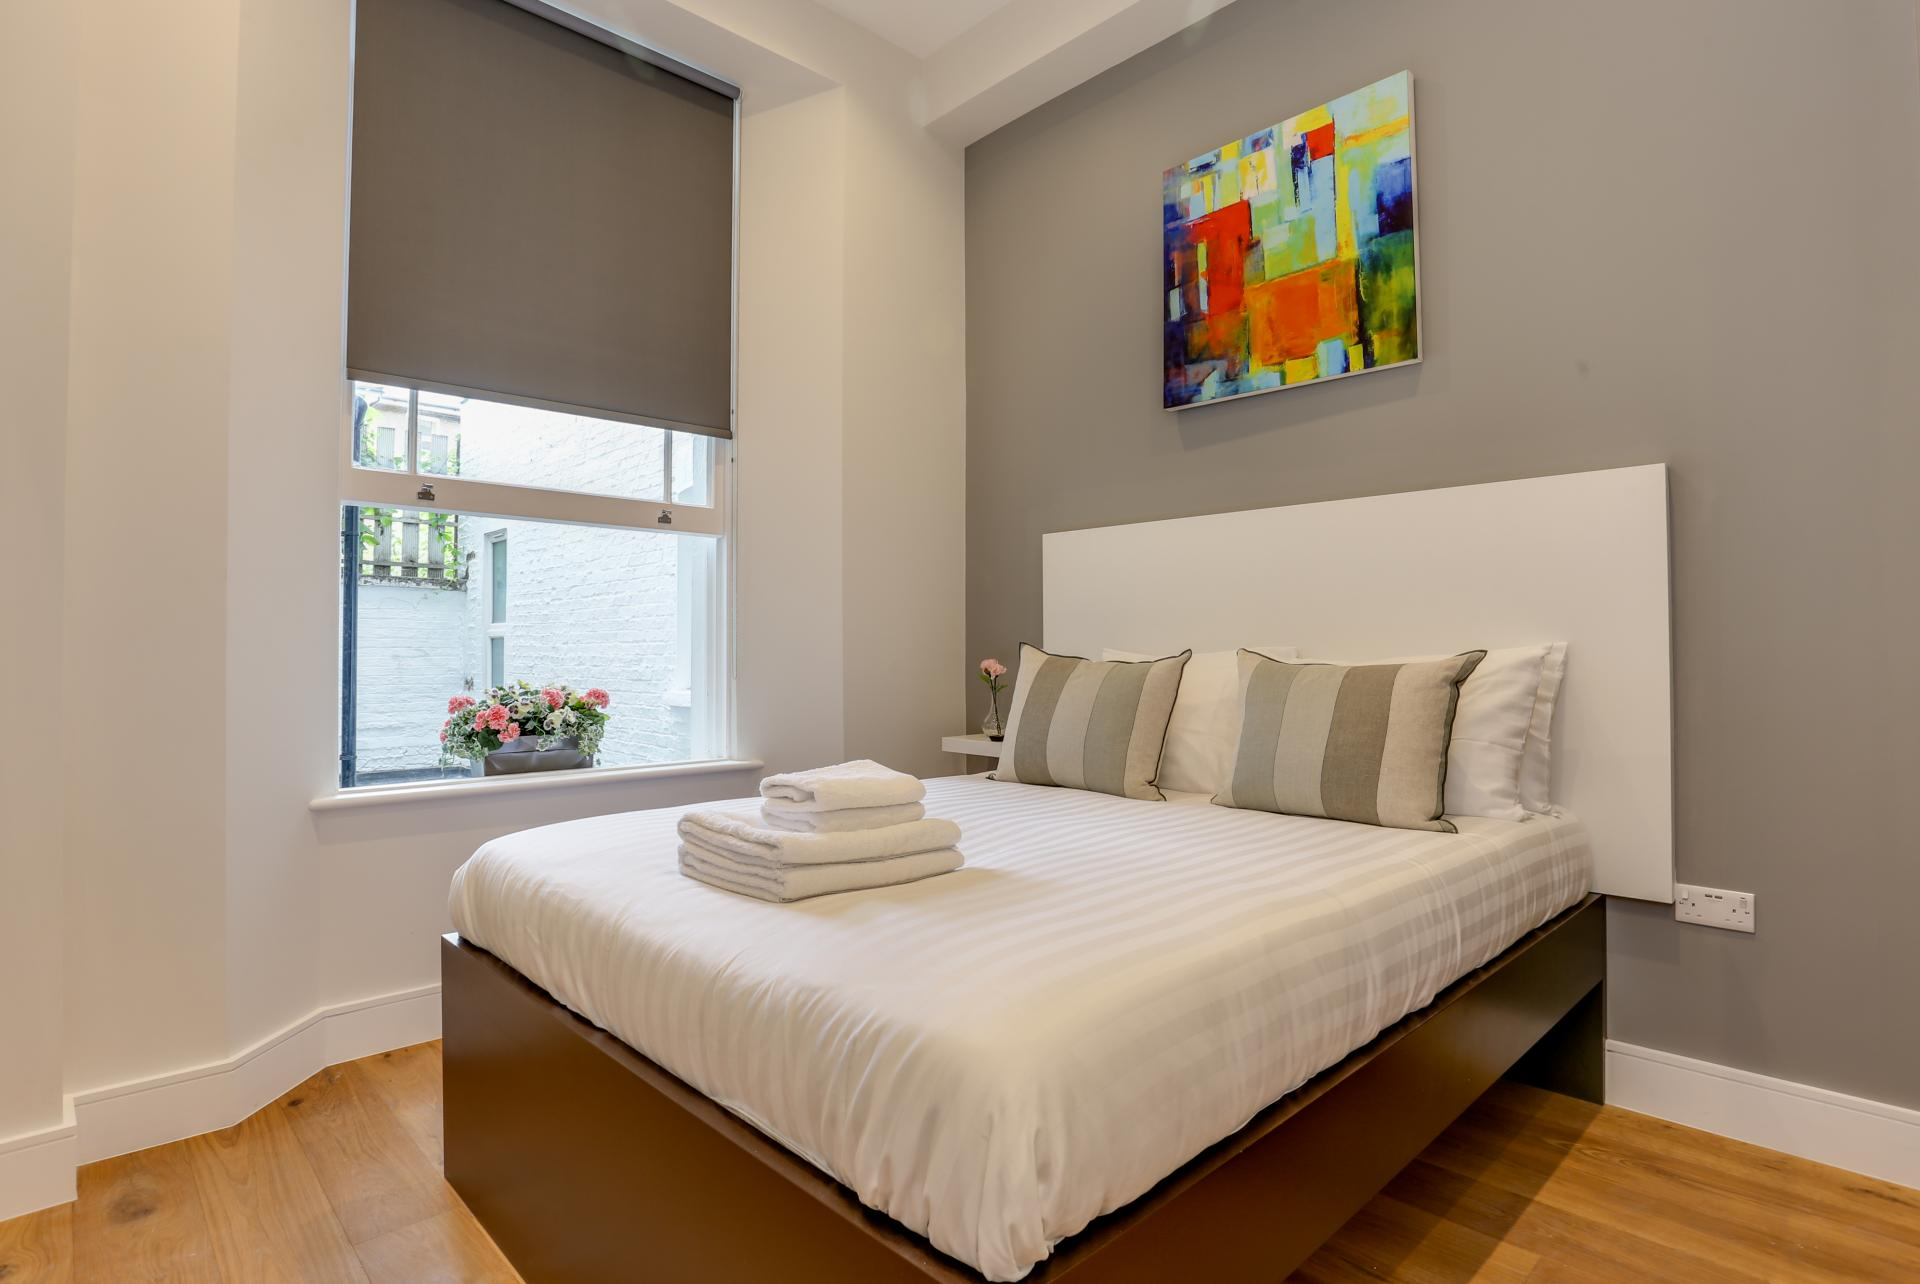 Bed at Queensborough Terrace, Bayswater, London